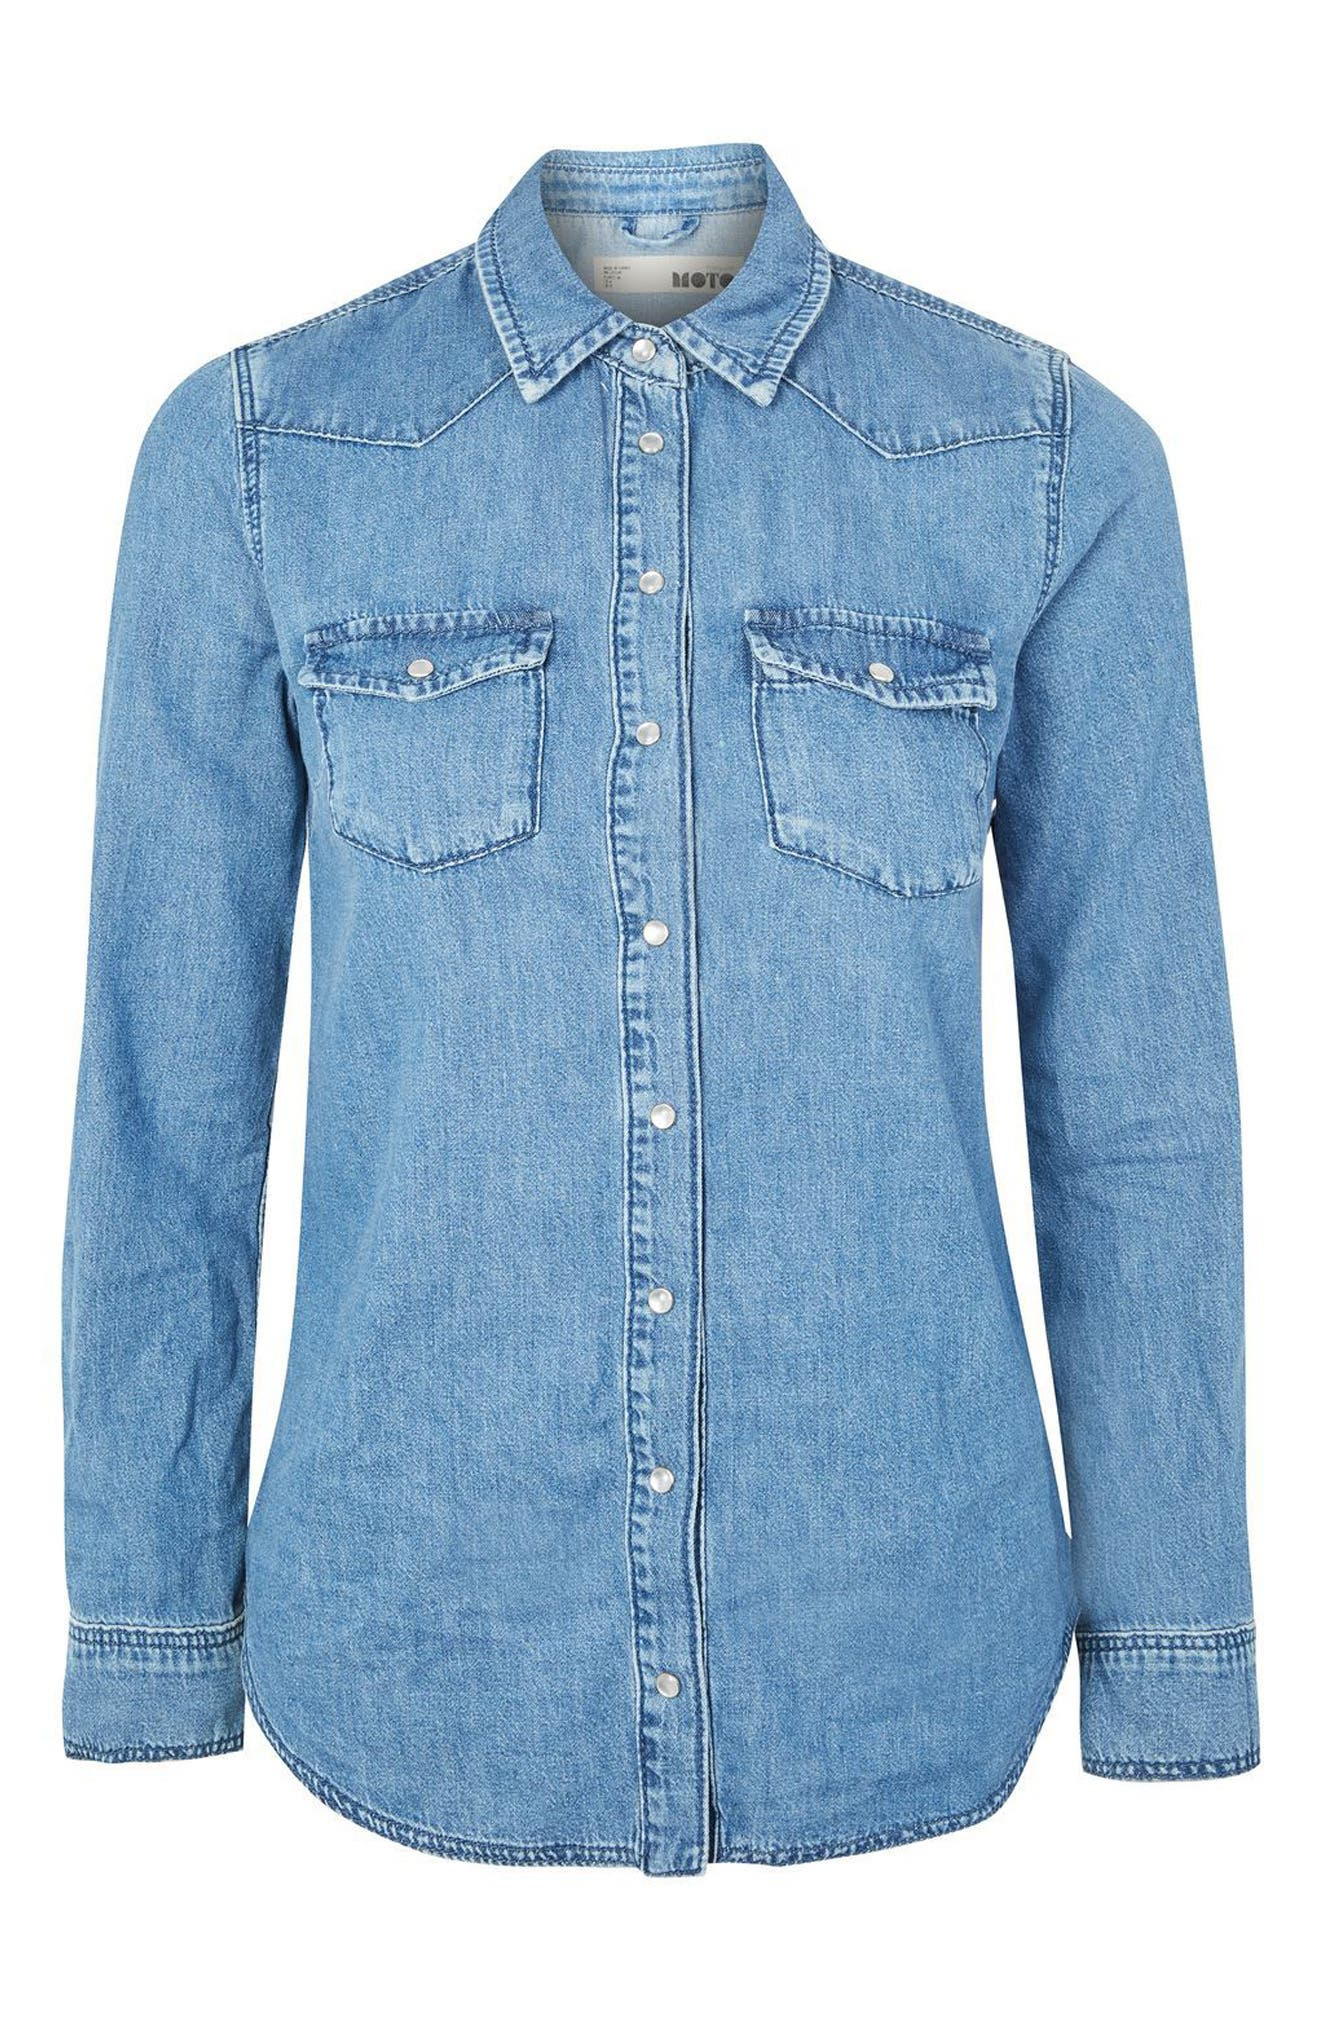 Western Denim Shirt,                             Alternate thumbnail 3, color,                             400